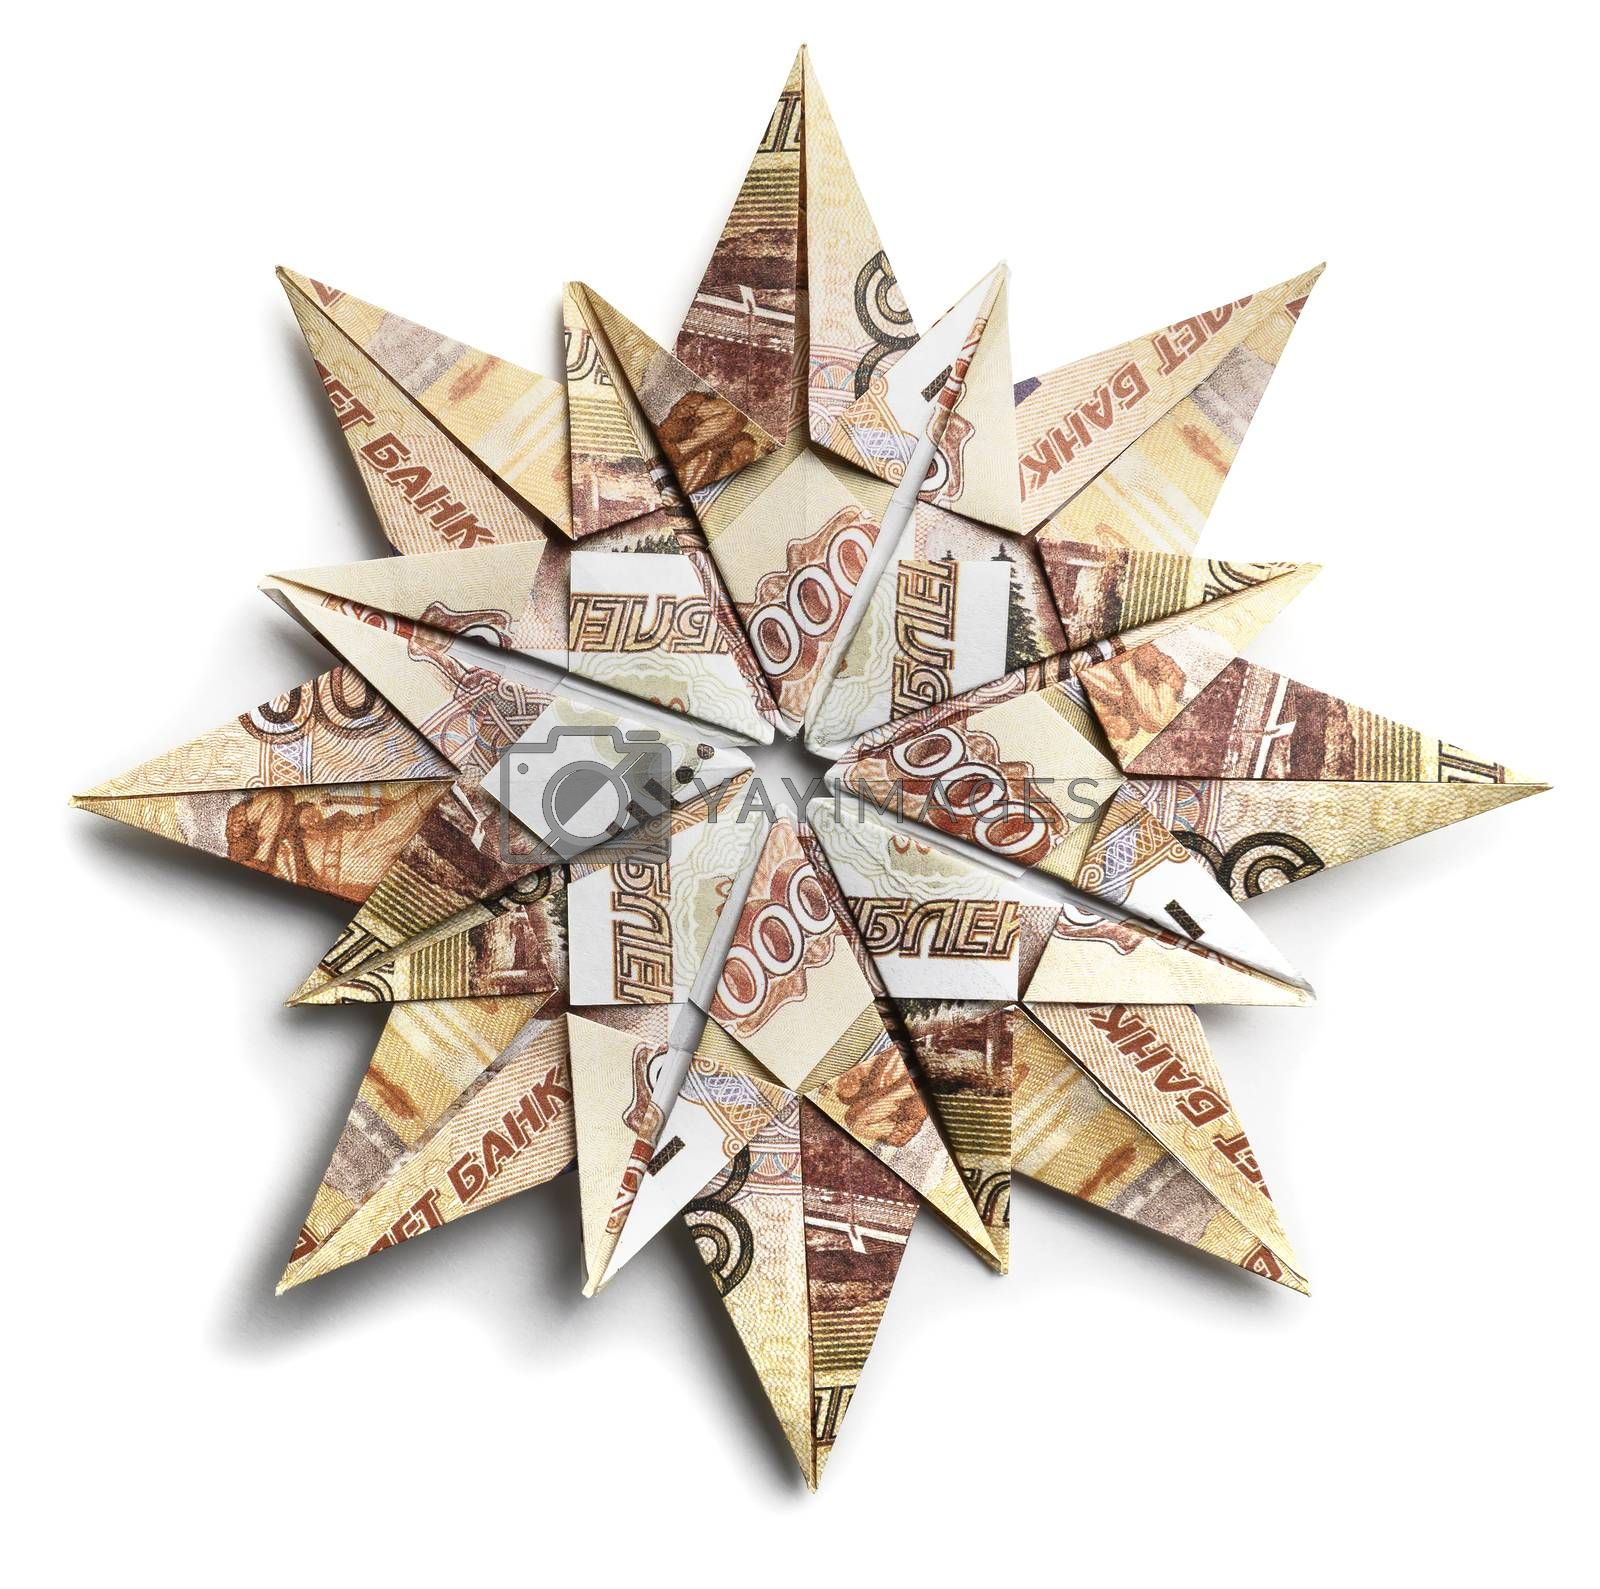 Banknote 5000 rubles in the form of snowflakes on a white background.